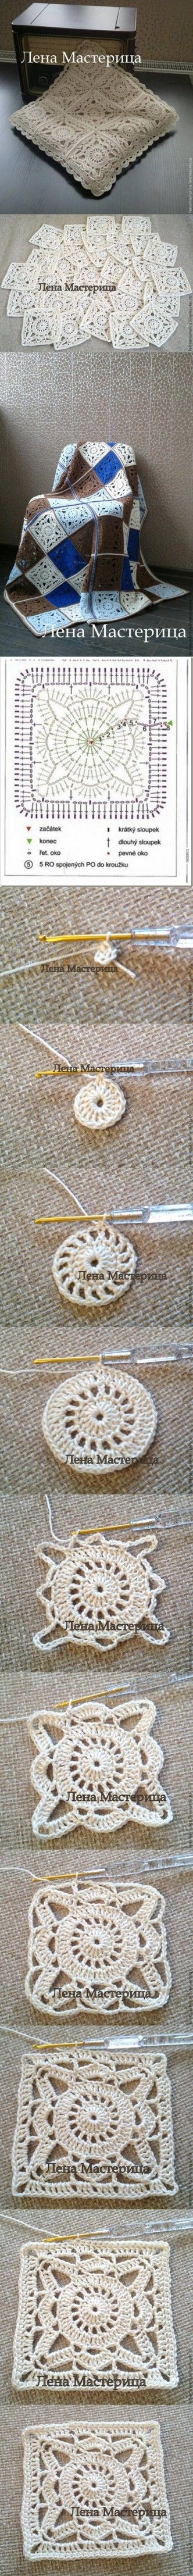 brocant gehaakt kussentje DIY Square Motif Lace DIY Projects